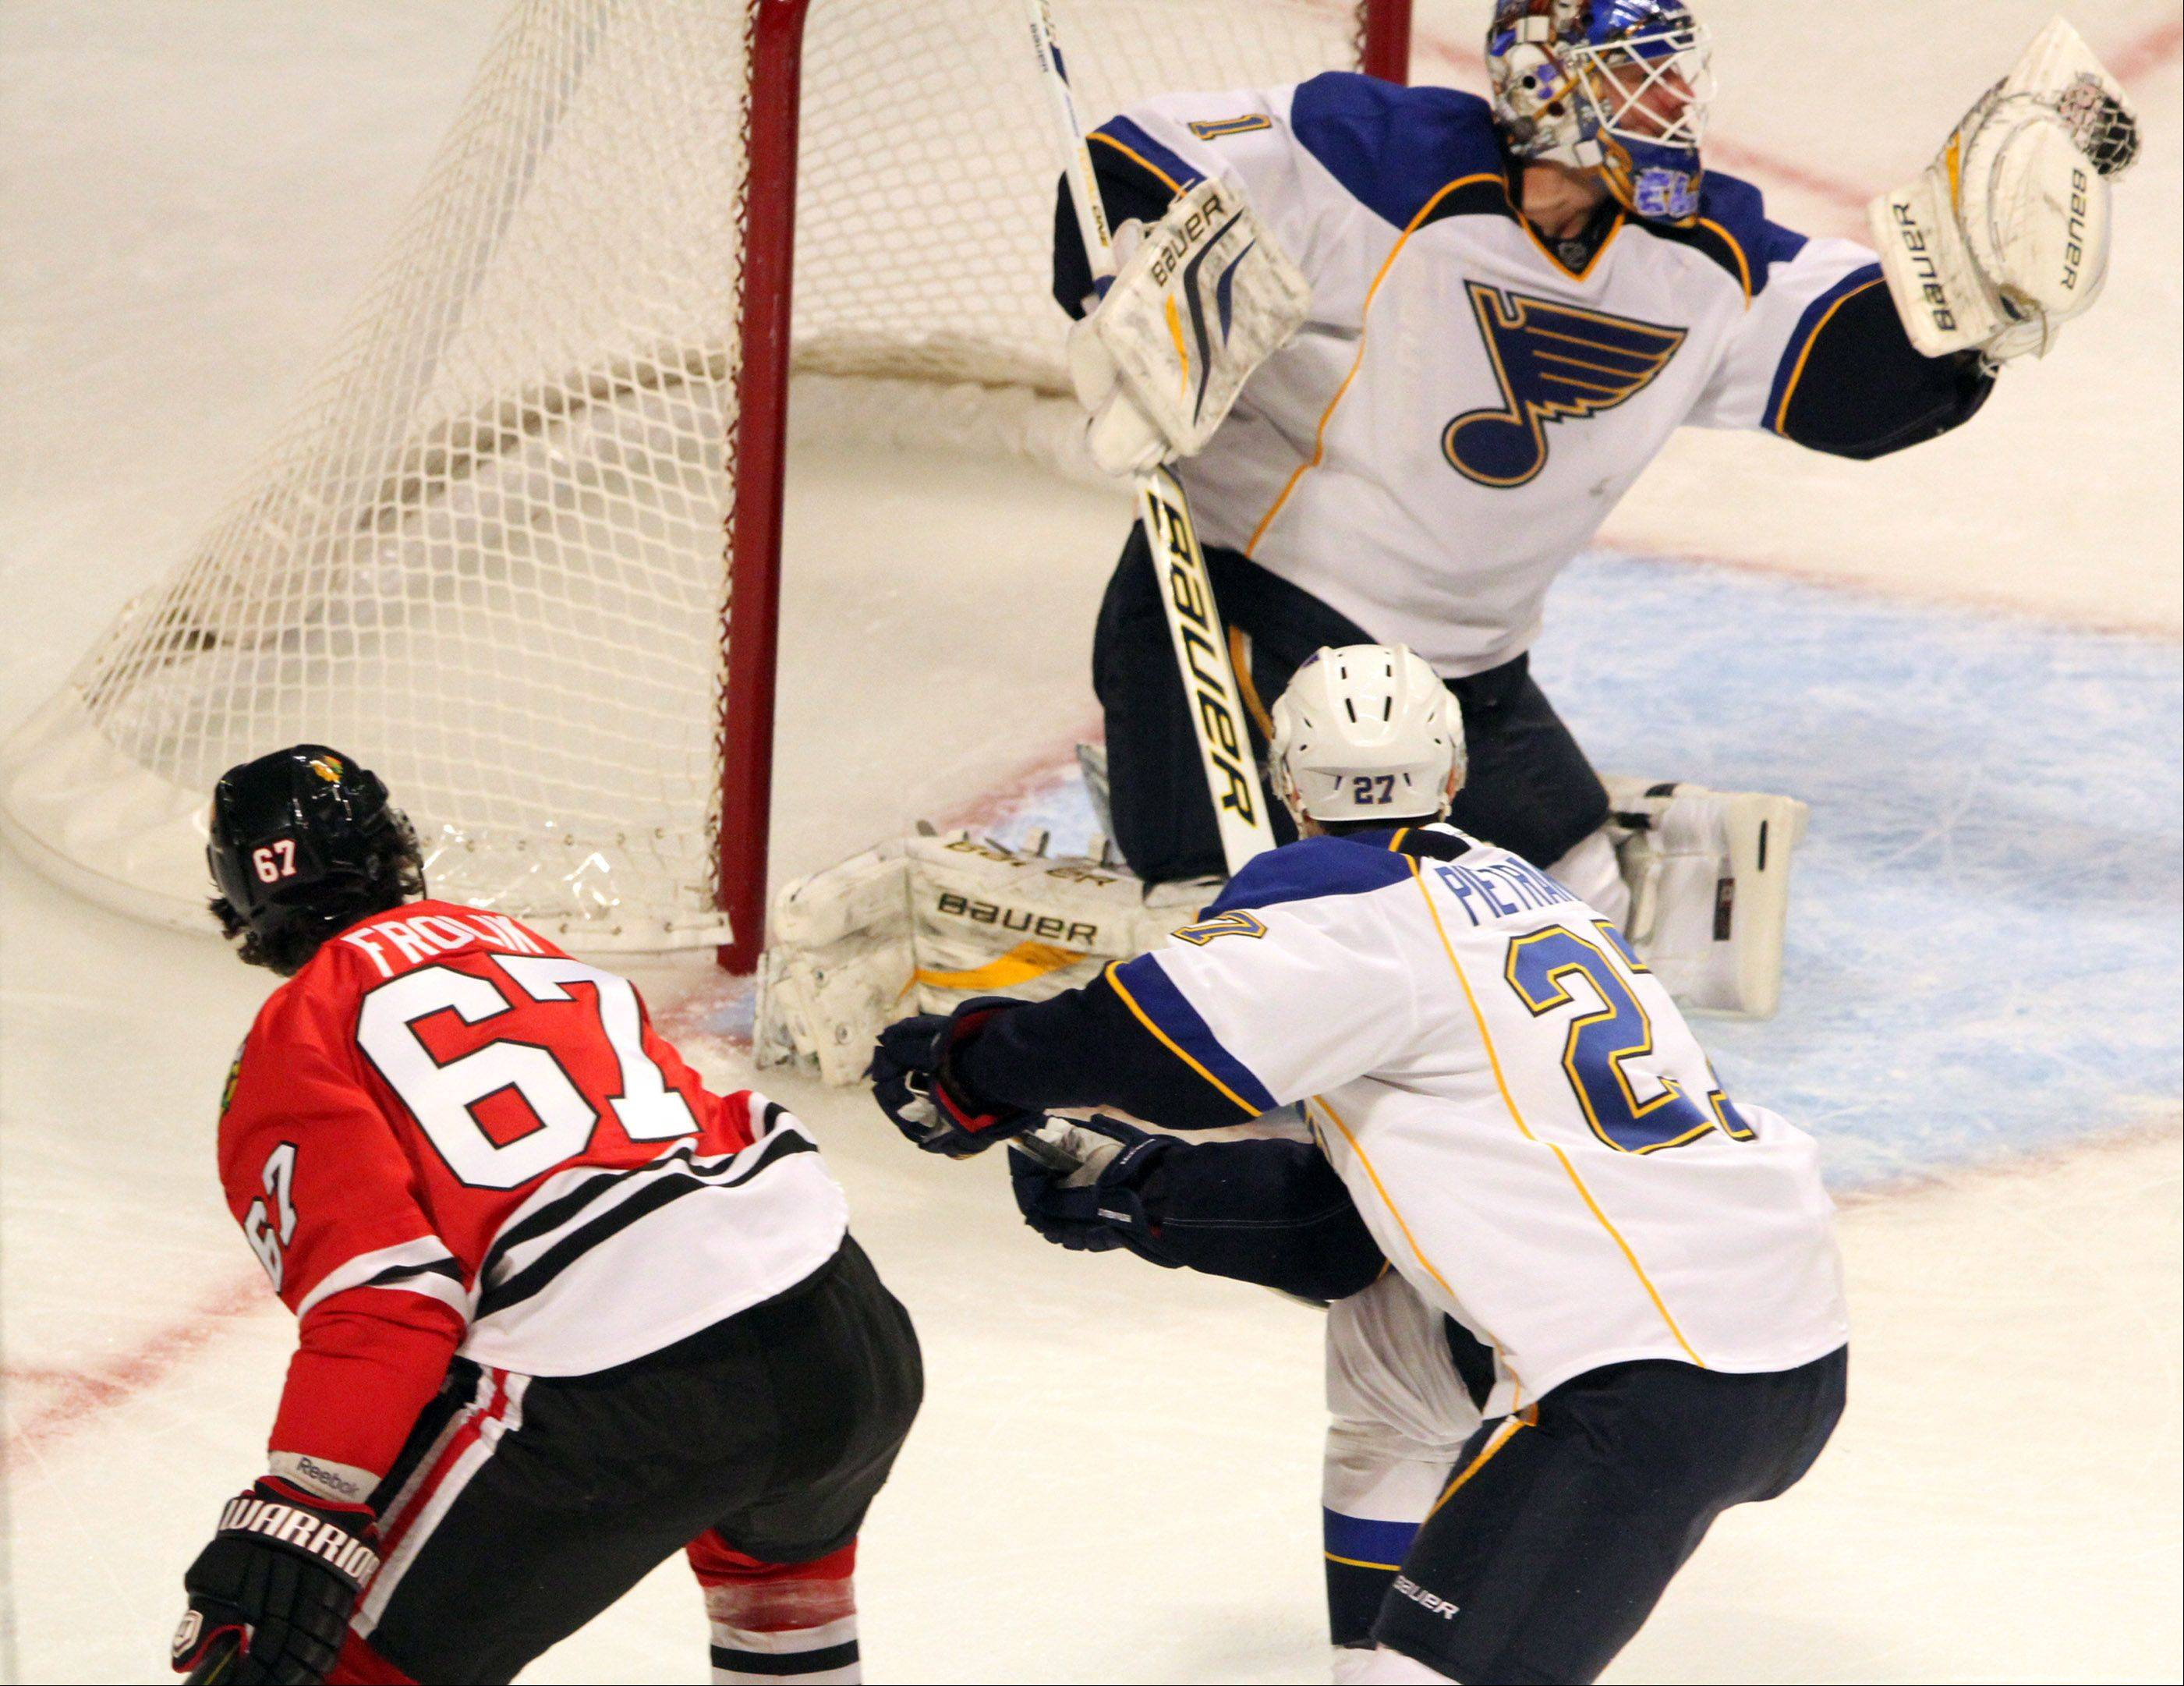 St. Louis Blues goalie Brian Elliott blocks a shot by Chicago Blackhawks center Michael Frolik during the second period.